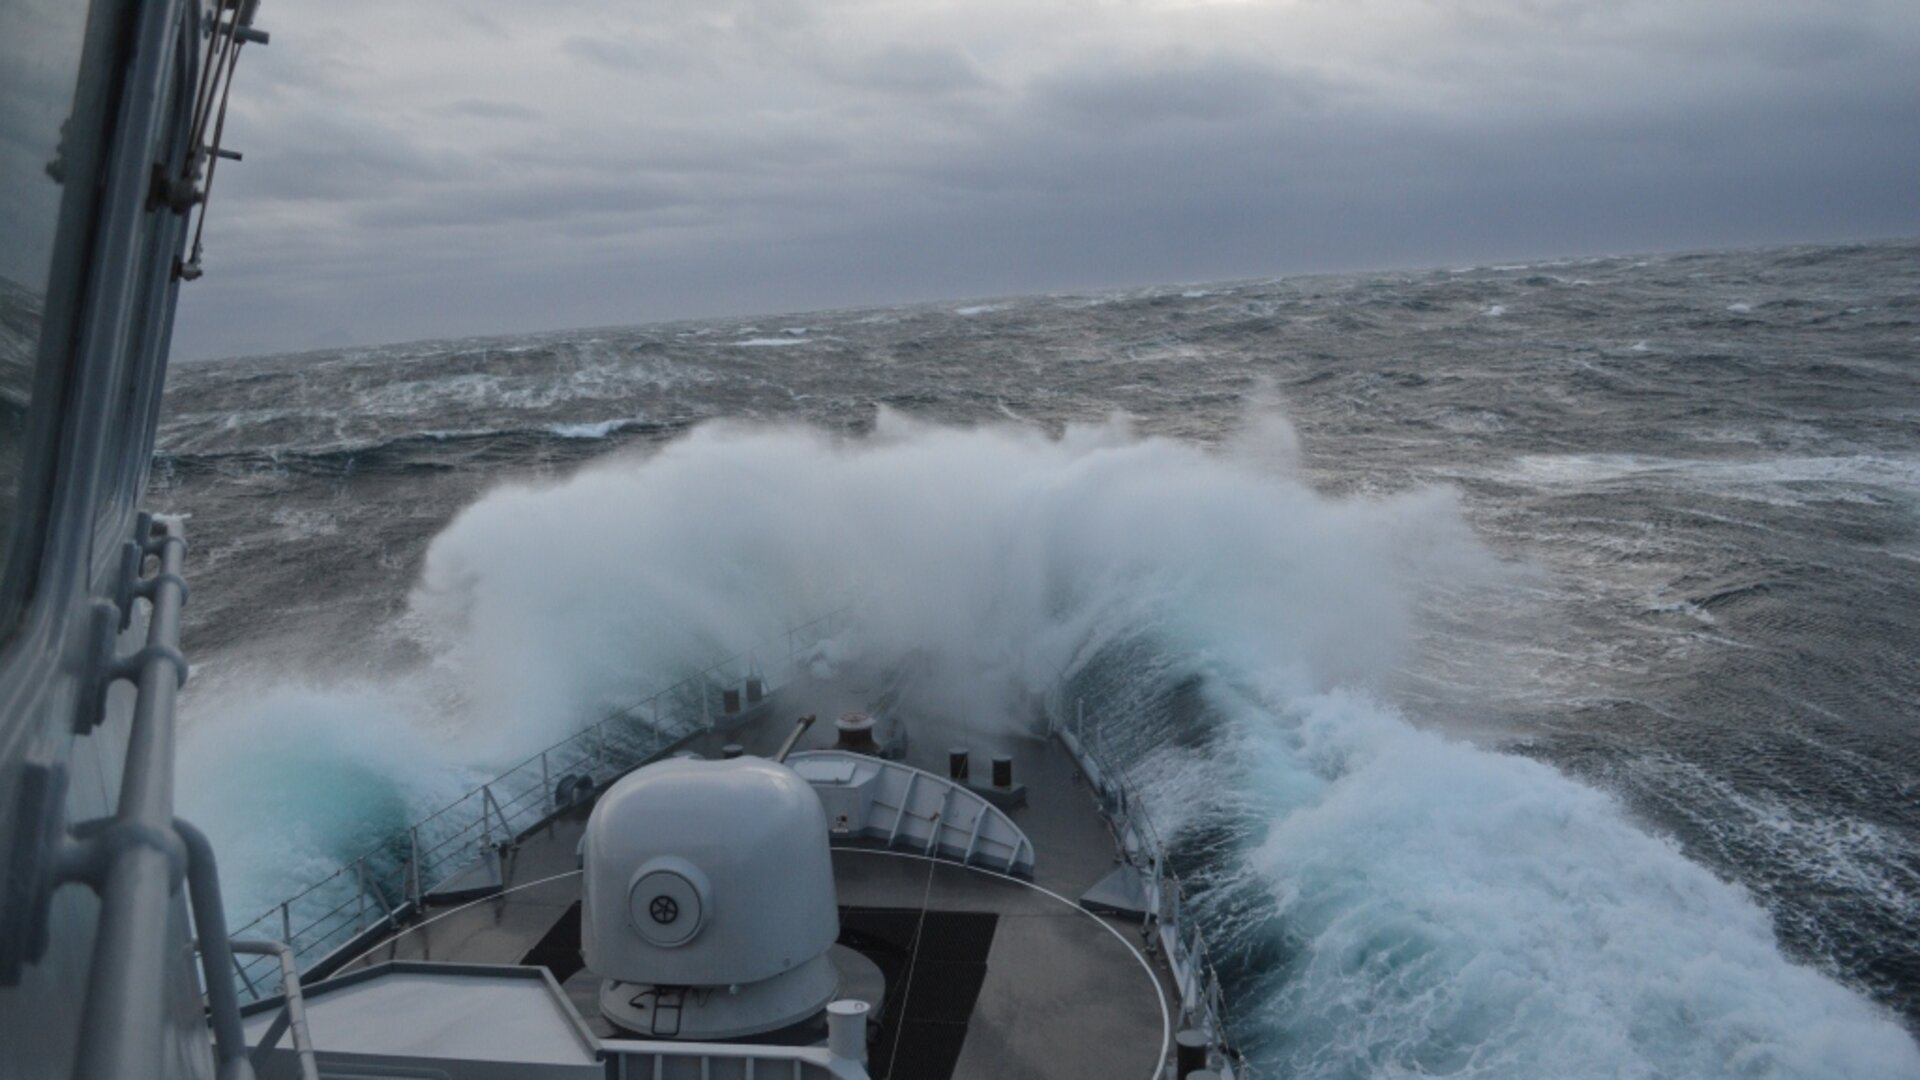 Frigate in rough waters